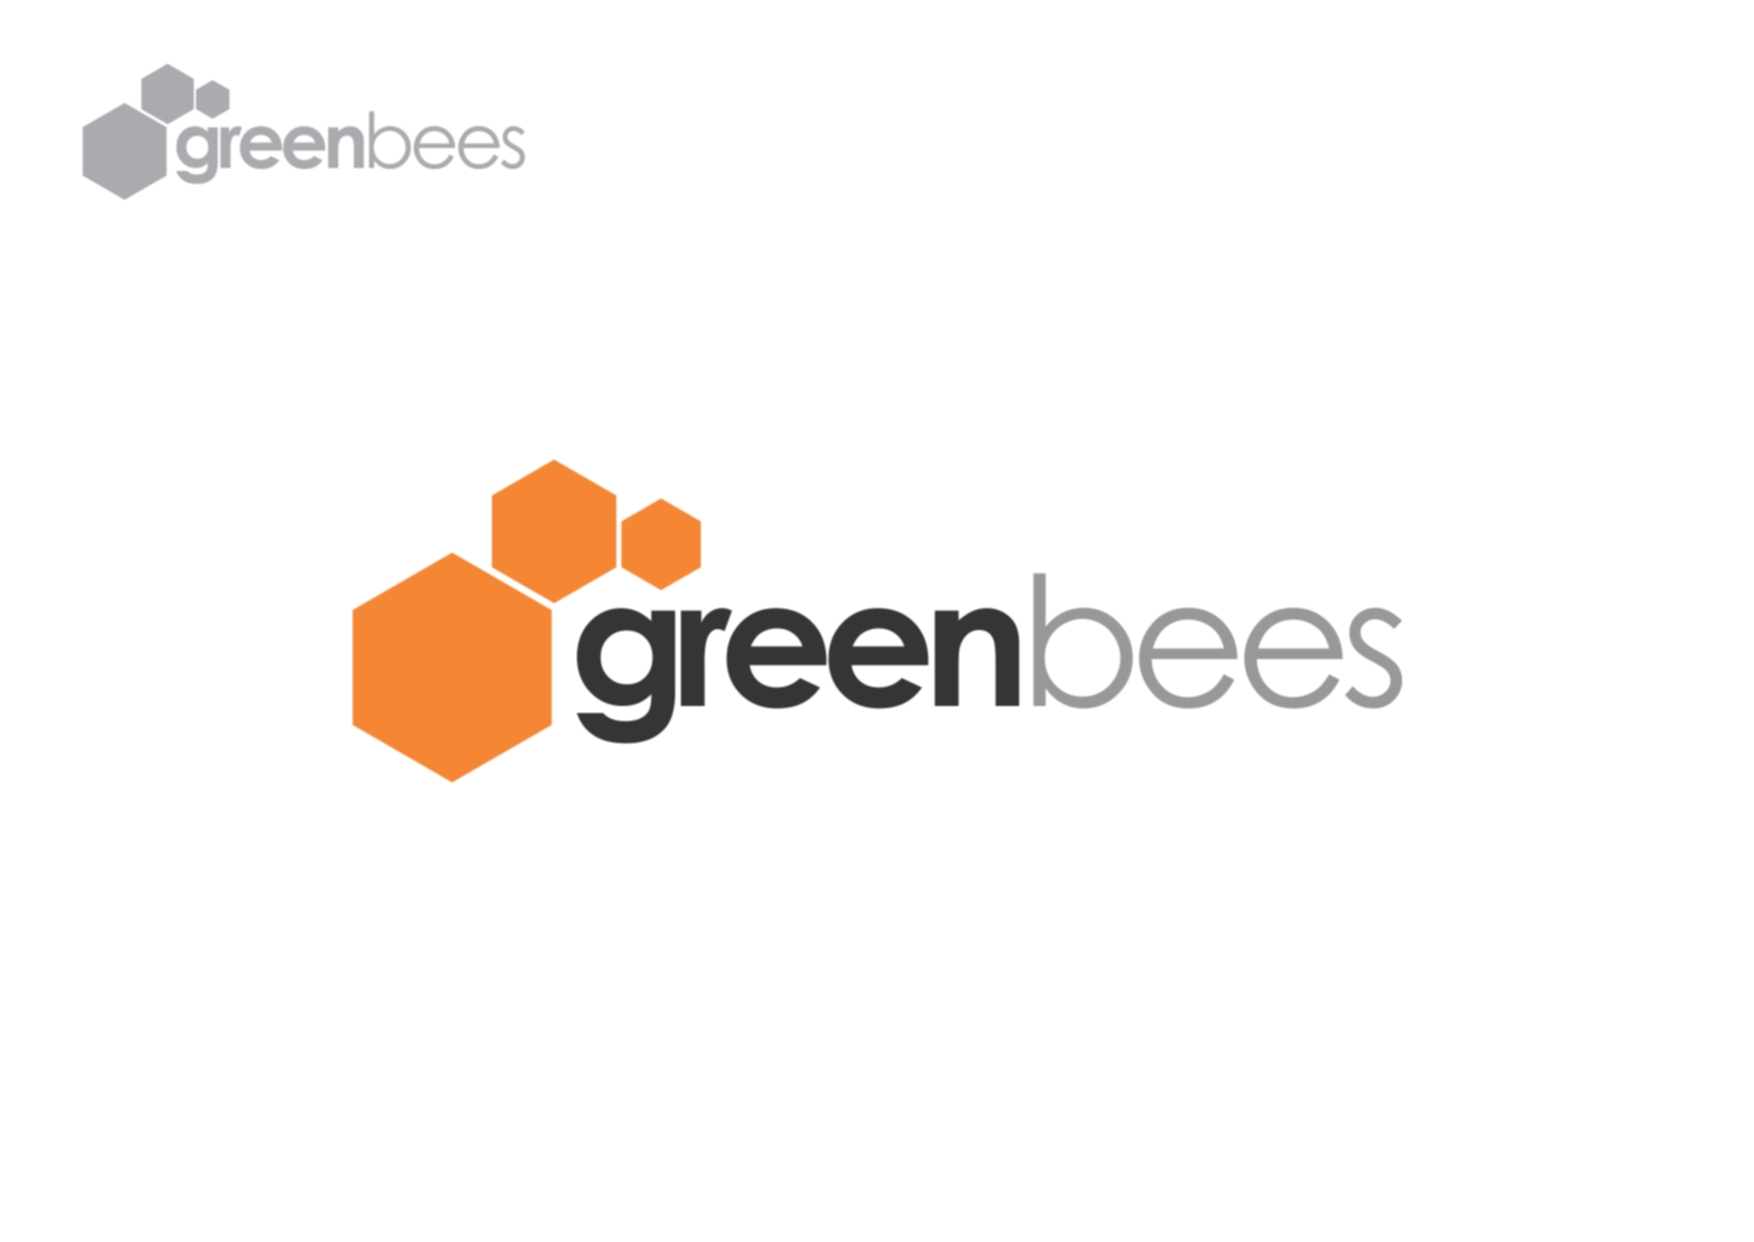 Logo Design by Private User - Entry No. 5 in the Logo Design Contest Greenbees Logo Design.